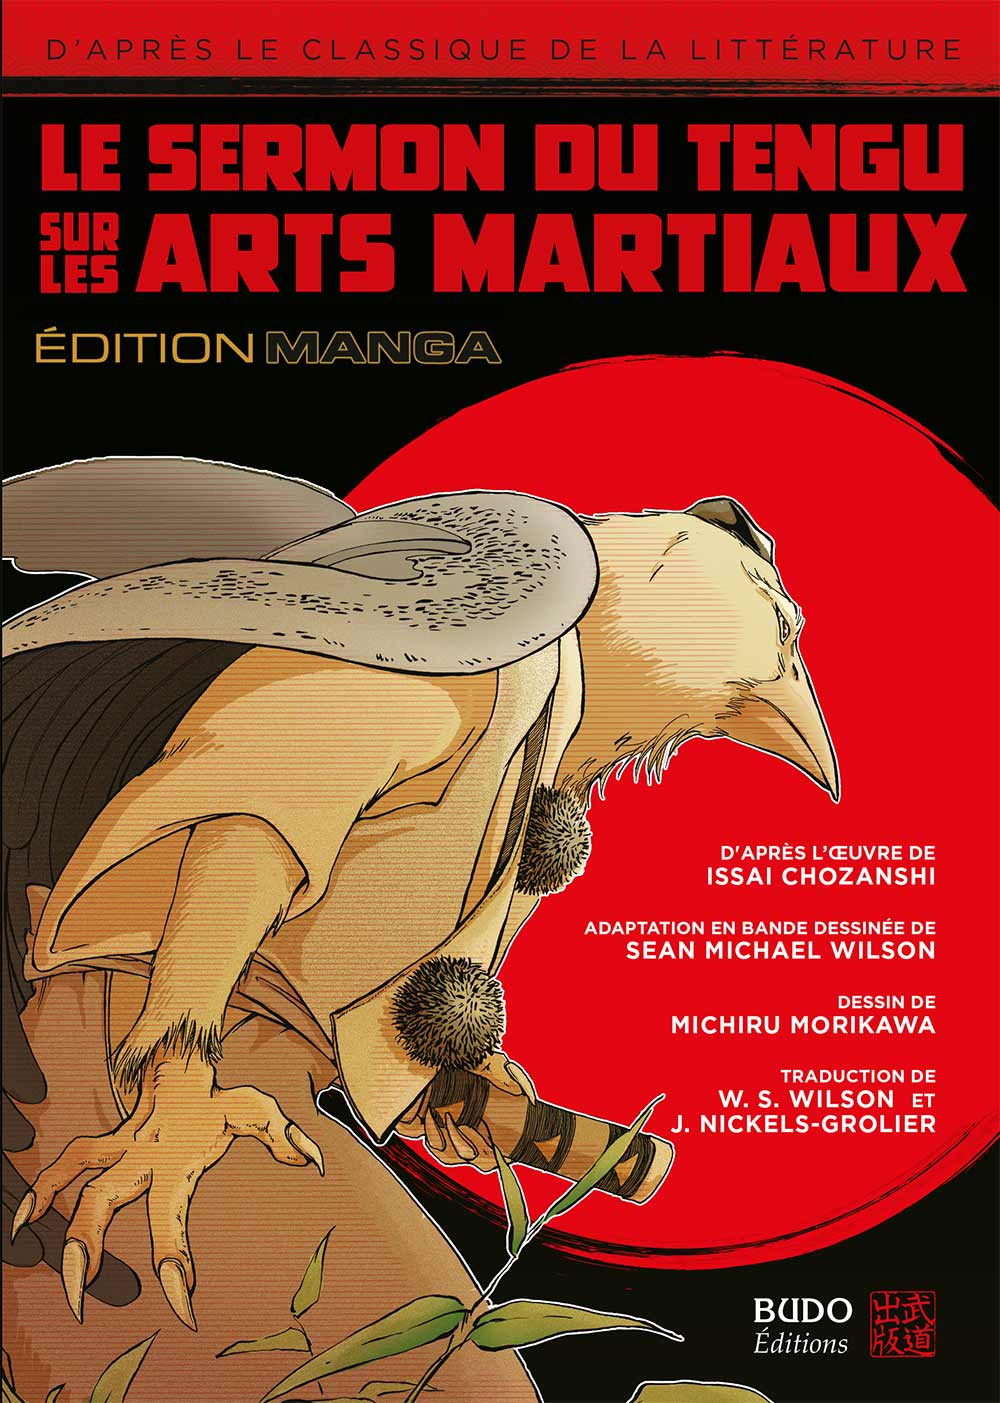 http://img.manga-sanctuary.com/big/le-sermon-du-tengu-sur-les-arts-martiaux-manga-volume-1-simple-207640.jpg